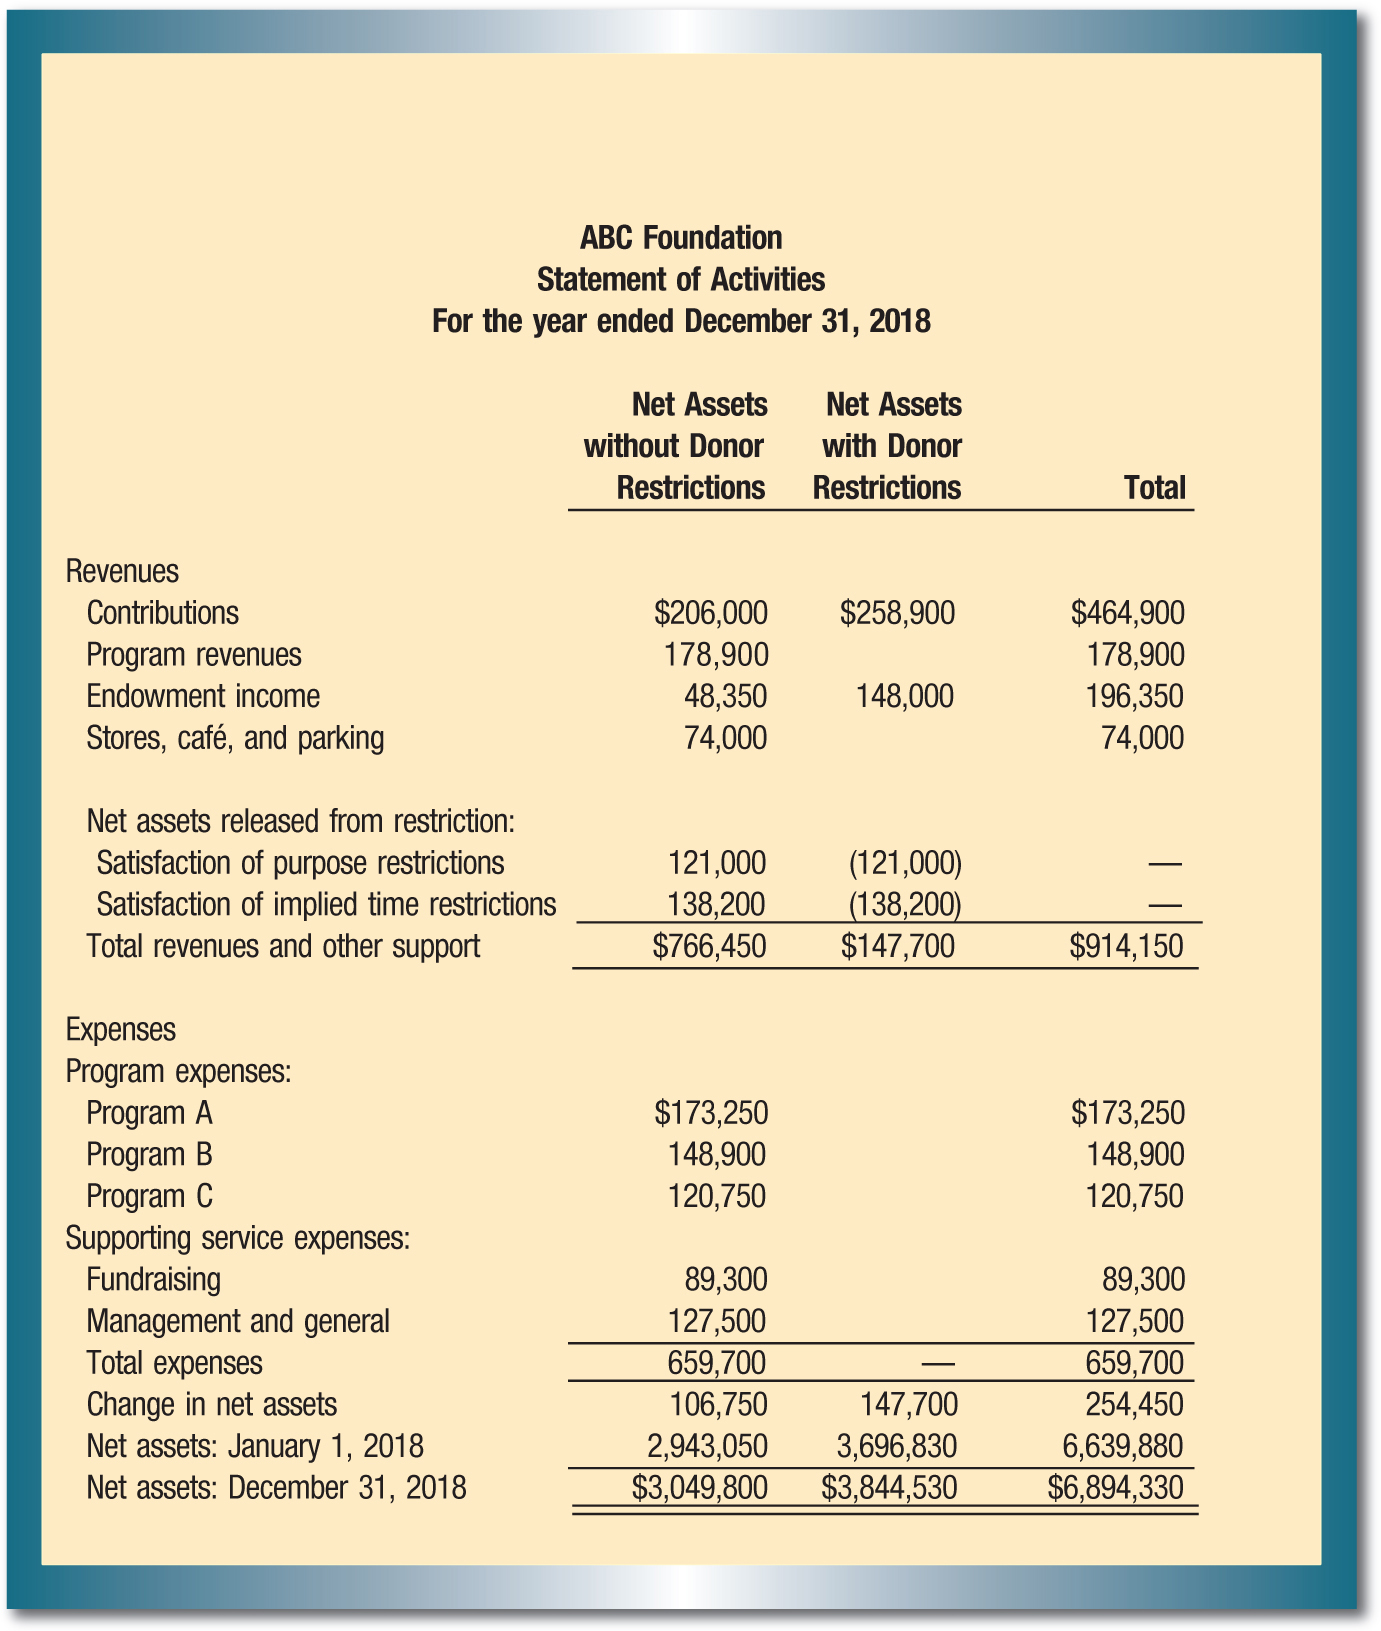 ABC Foundation Statement of Activities For the year ended December 31, 2018 Net Assets with Donor Restrictions; Net Assets without Donor Restrictions; Total Revenues Contributions; $206,000; $258,900; $464,900; Program revenues; 178,900; 178,900 Endowment income; 48,350; 148,000; 196,350 Stores, café, and parking; 74,000; 74,000 Net assets released from restriction: Satisfaction of purpose restrictions; 121,000; (121,000); — Satisfaction of implied time restrictions; 138,200; (138,200); — Total revenues and other support; $766,450; $147,700; $914,150 Expenses Program expenses: Program A; $173,250; $173,250 Program B; 148,900; 148,900 Program C; 120,750; 120,750 Supporting service expenses: Fundraising; 89,300; 89,300 Management and general; 127,500; 127,500 Total expenses; 659,700; —; 659,700 Change in net assets; 106,750; 147,700; 254,450 Net assets: January 1, 2018; 2,943,050; 3,696,830; 6,639,880 Net assets: December 31, 2018; $3,049,800; $3,844,530; $6,894,330